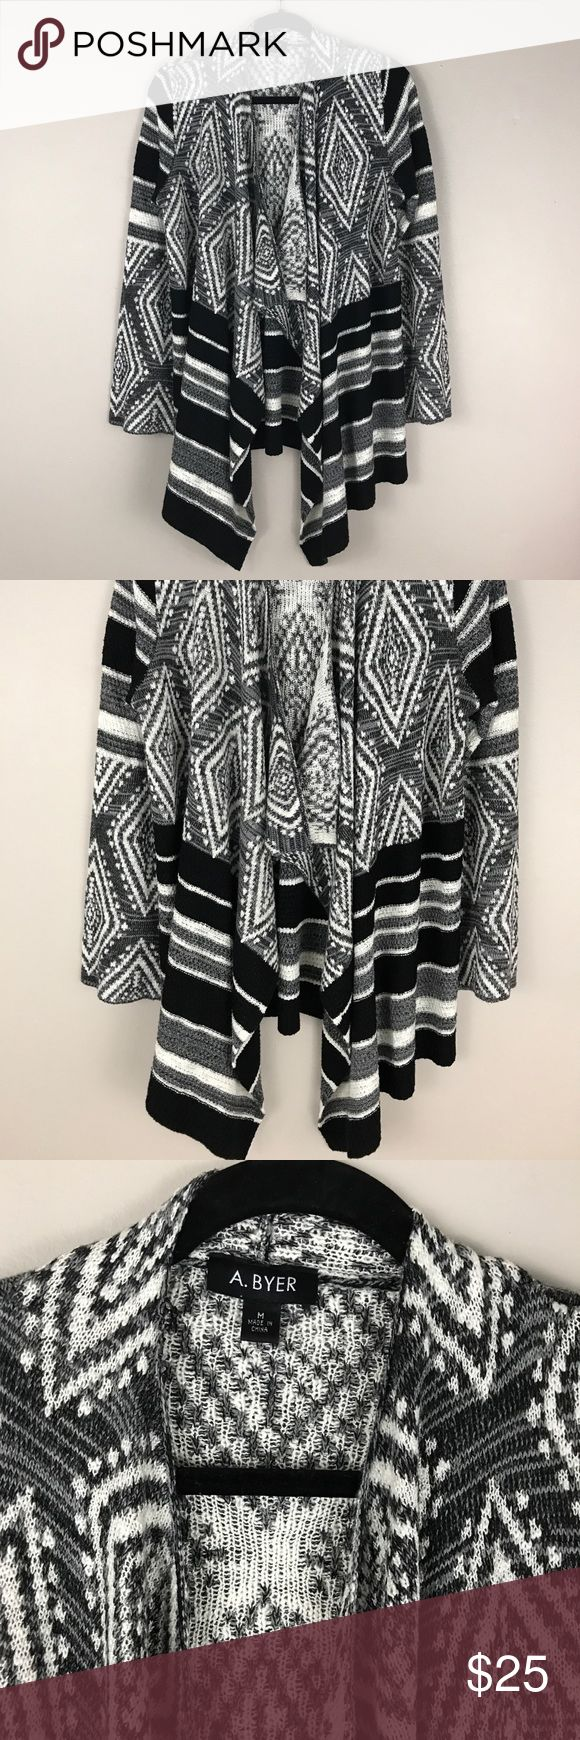 A. Byer Black White Drape Tribal Print  Sweater Open front cardigan sweater in black and white Tribal Print. Long sleeve. Very warm and cozy perfect layering piece. Easy loungewear. In excellent condition. Fits true to size. A. Byer Sweaters Cardigans